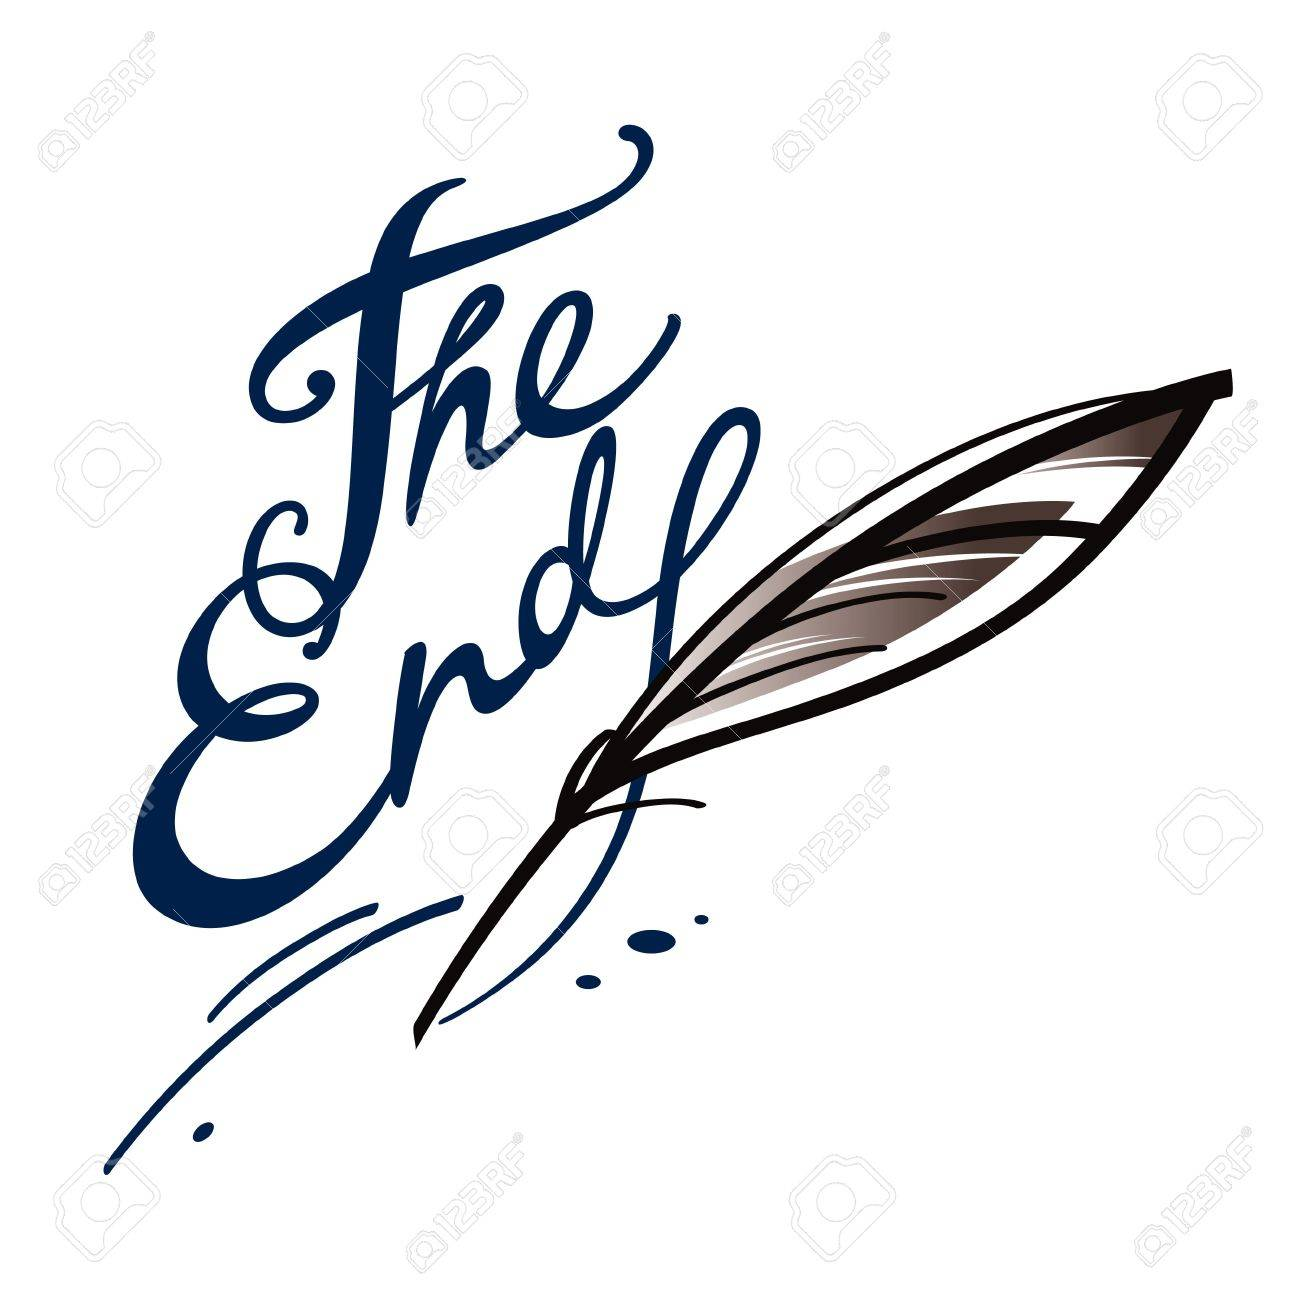 The end finish final chapter book letter ink feather Stock Vector - 11783123